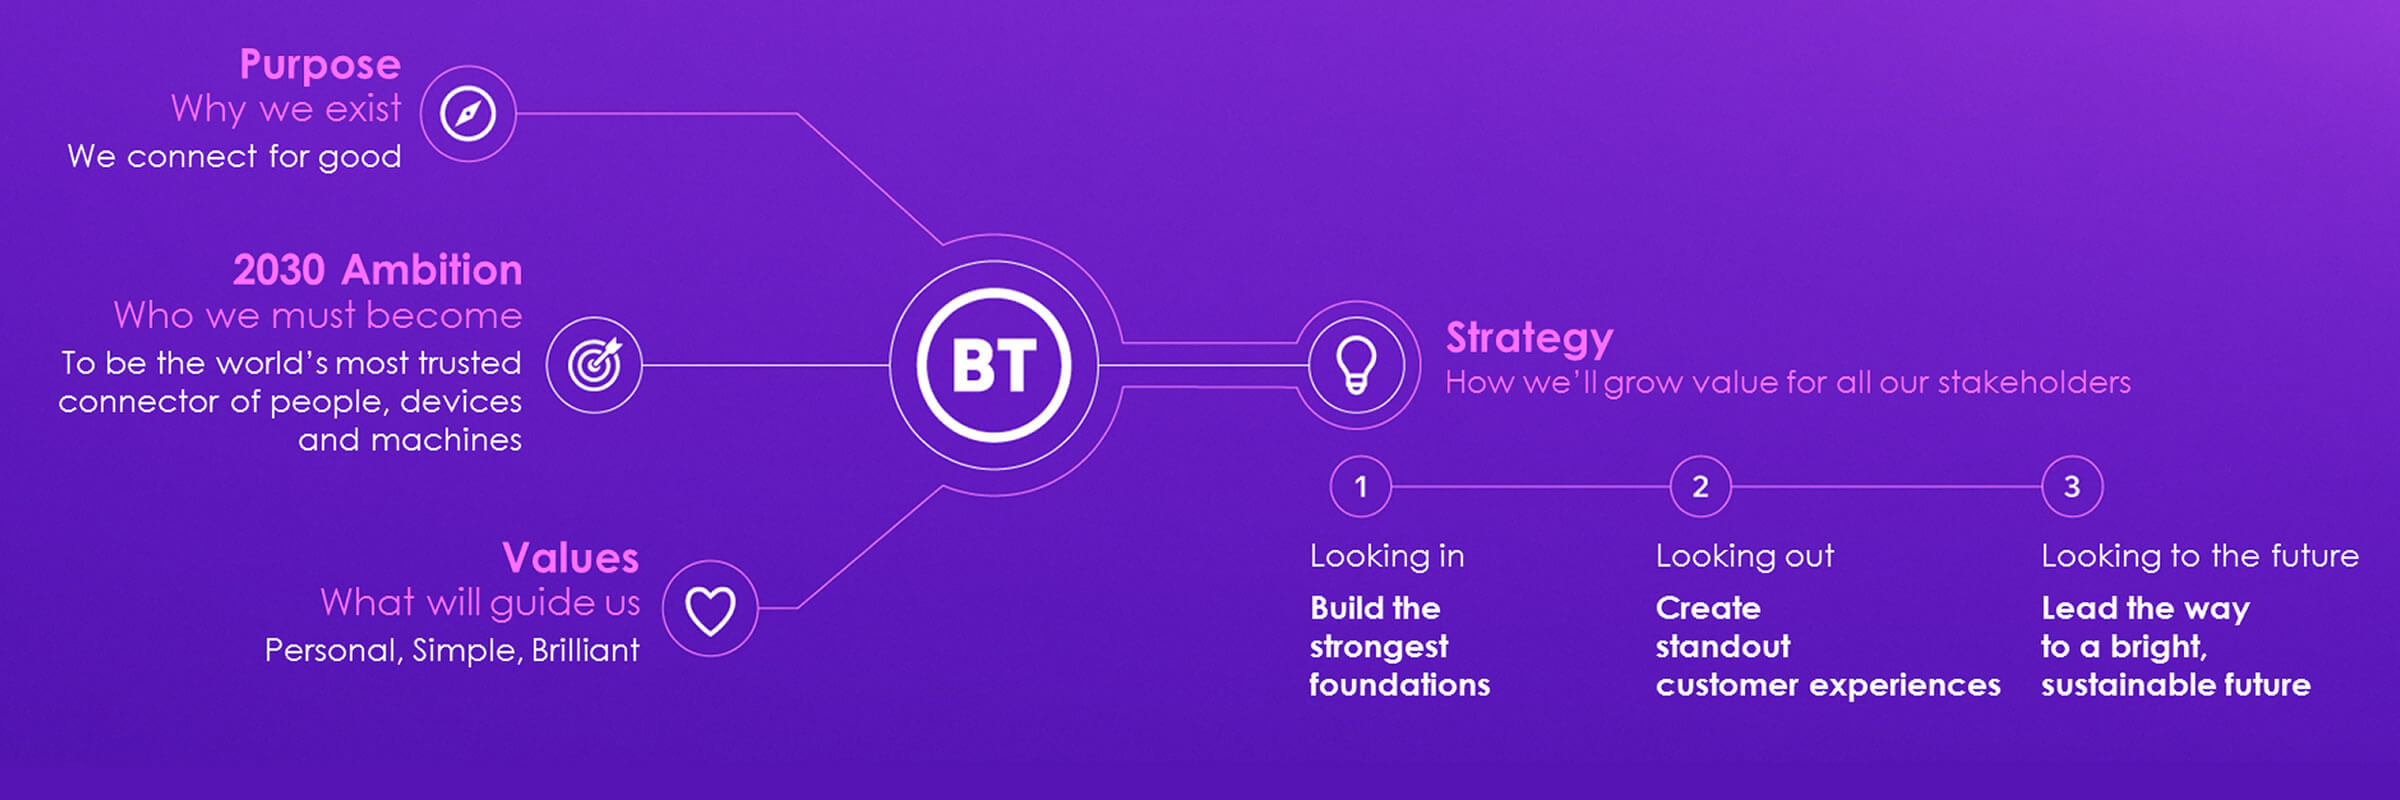 BT's purpose, goal and strategy